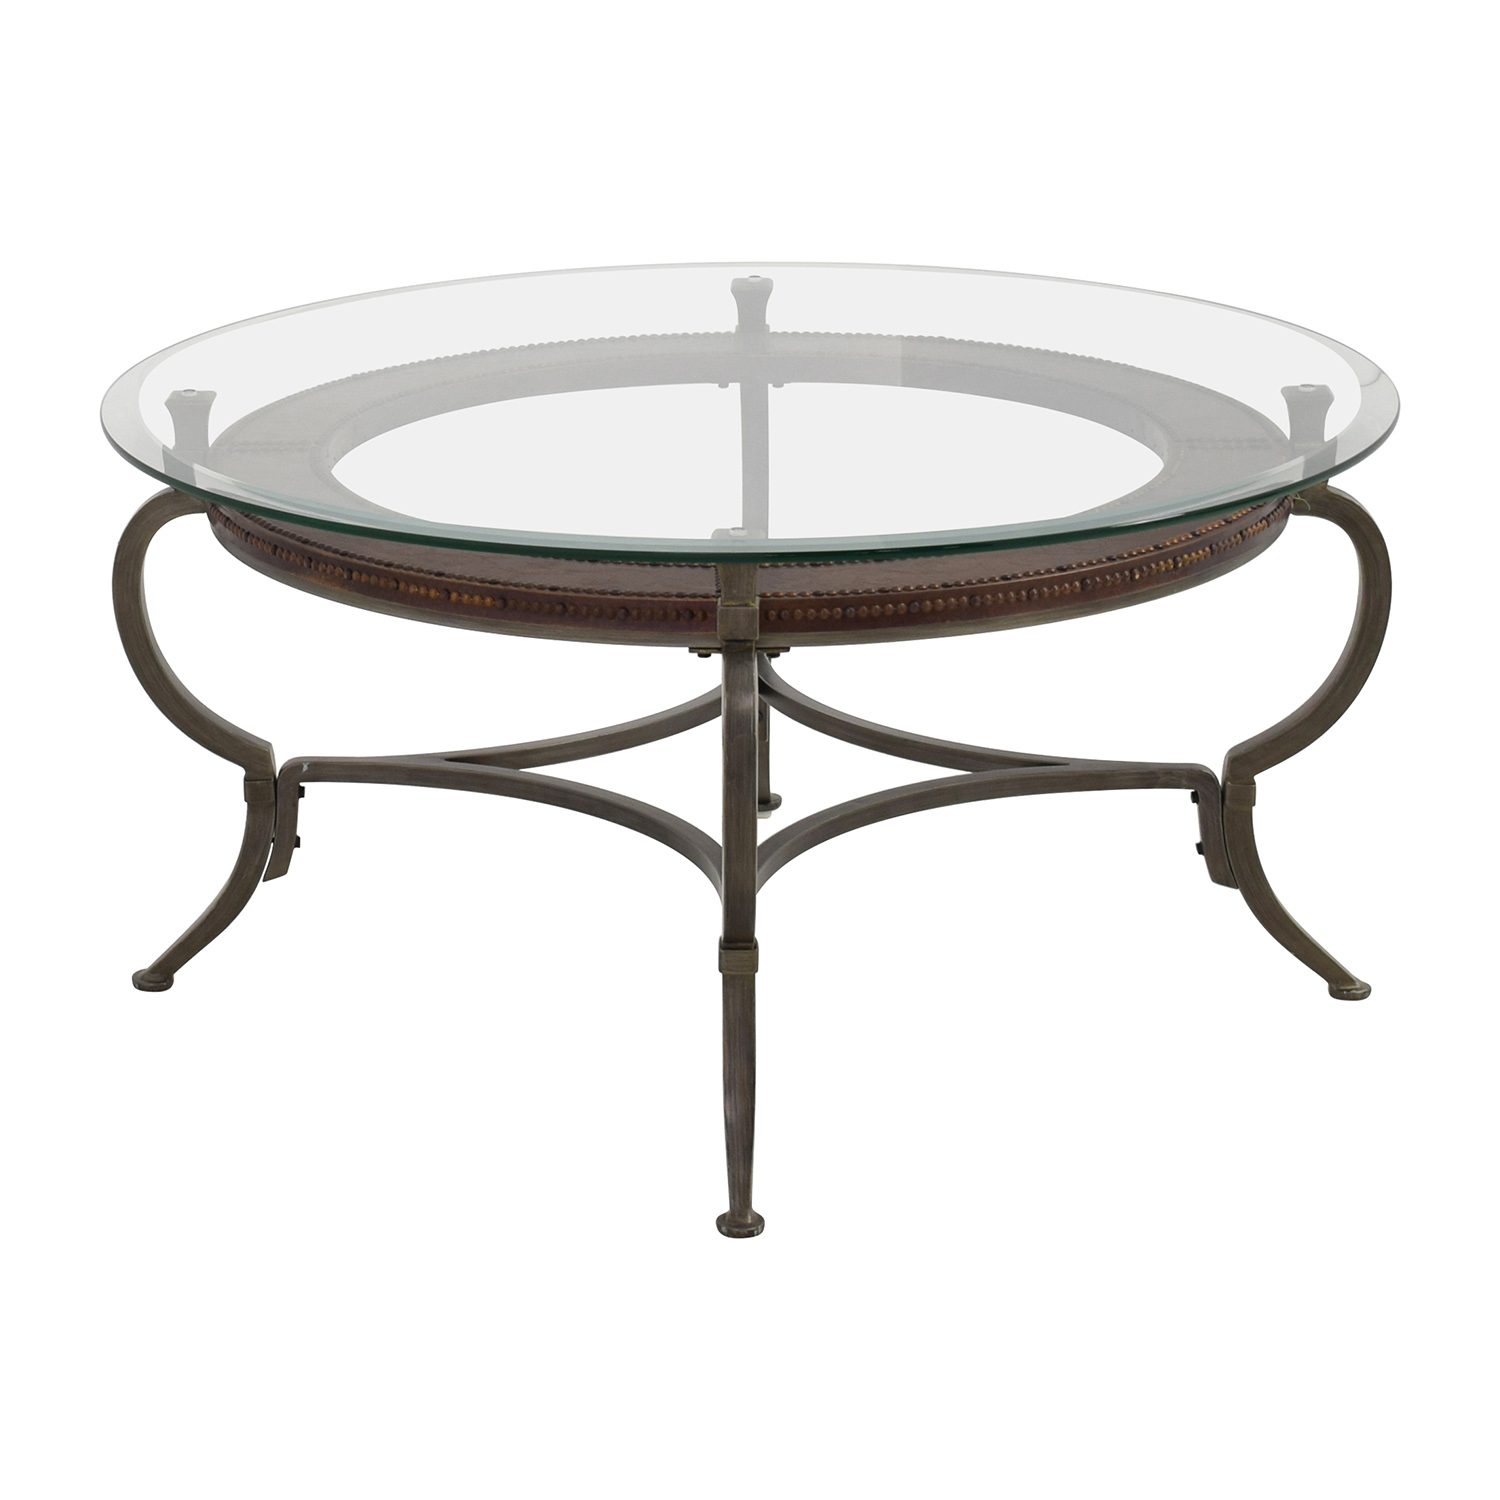 Glass And Steel Coffee Tables 86 Off Macy 39s Macy 39s Round Metal And Glass Cocktail